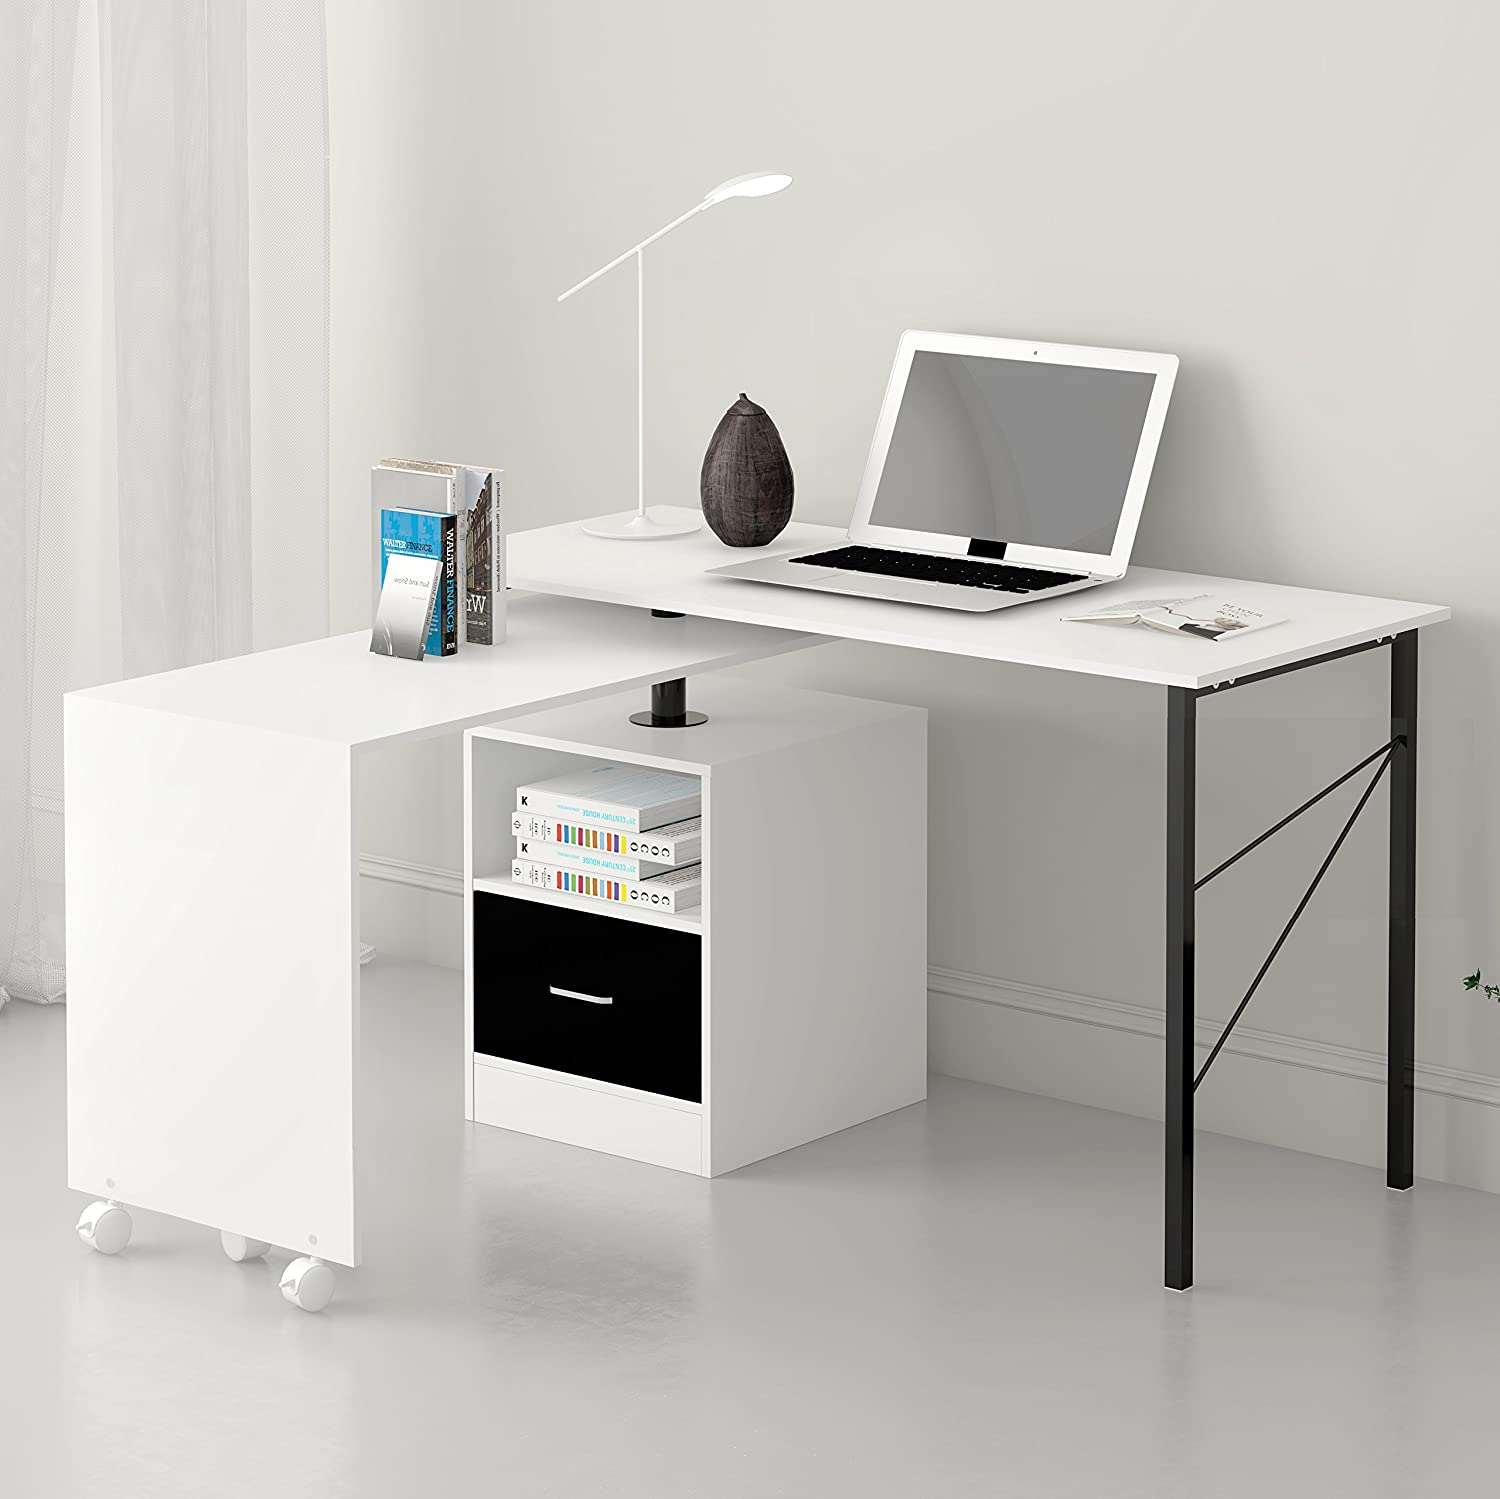 Cherry Tree Furniture L-Shaped Expandable Black Computer Workstation Corner Desk with Storage in Black Colour